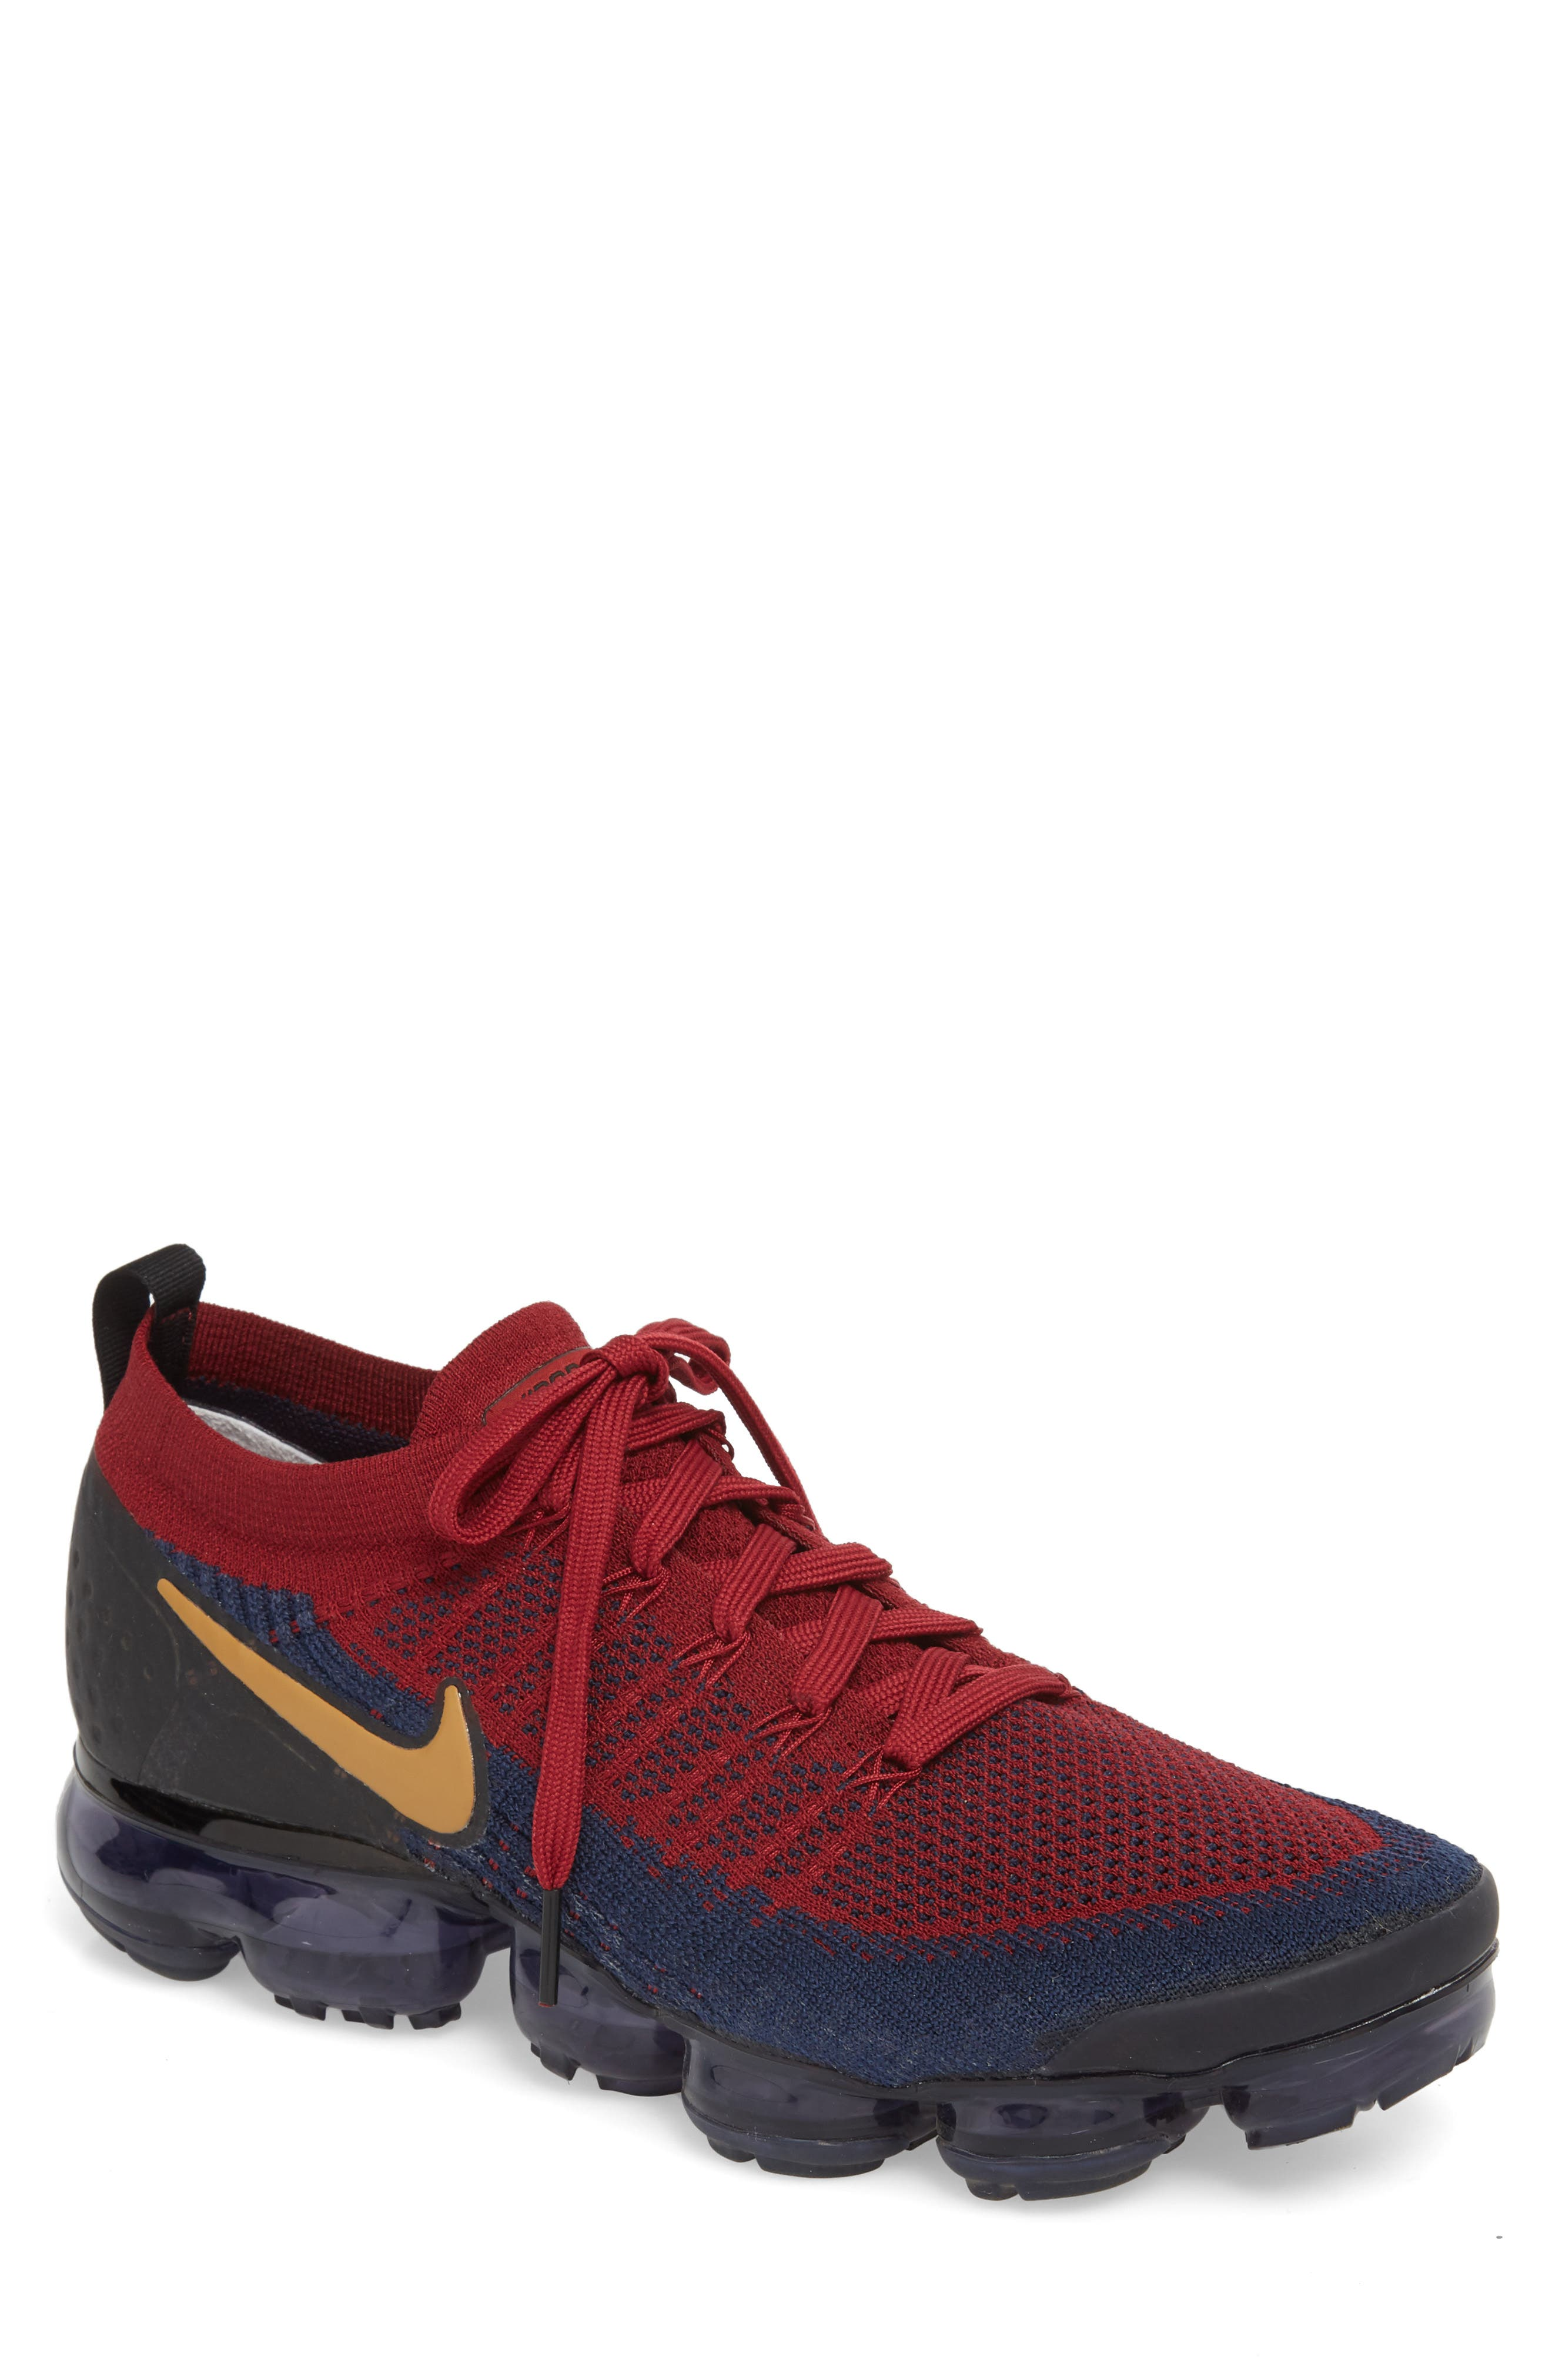 Air Vapormax Flyknit 2 Running Shoe,                         Main,                         color, Team Red/ Wheat/ Obsidian